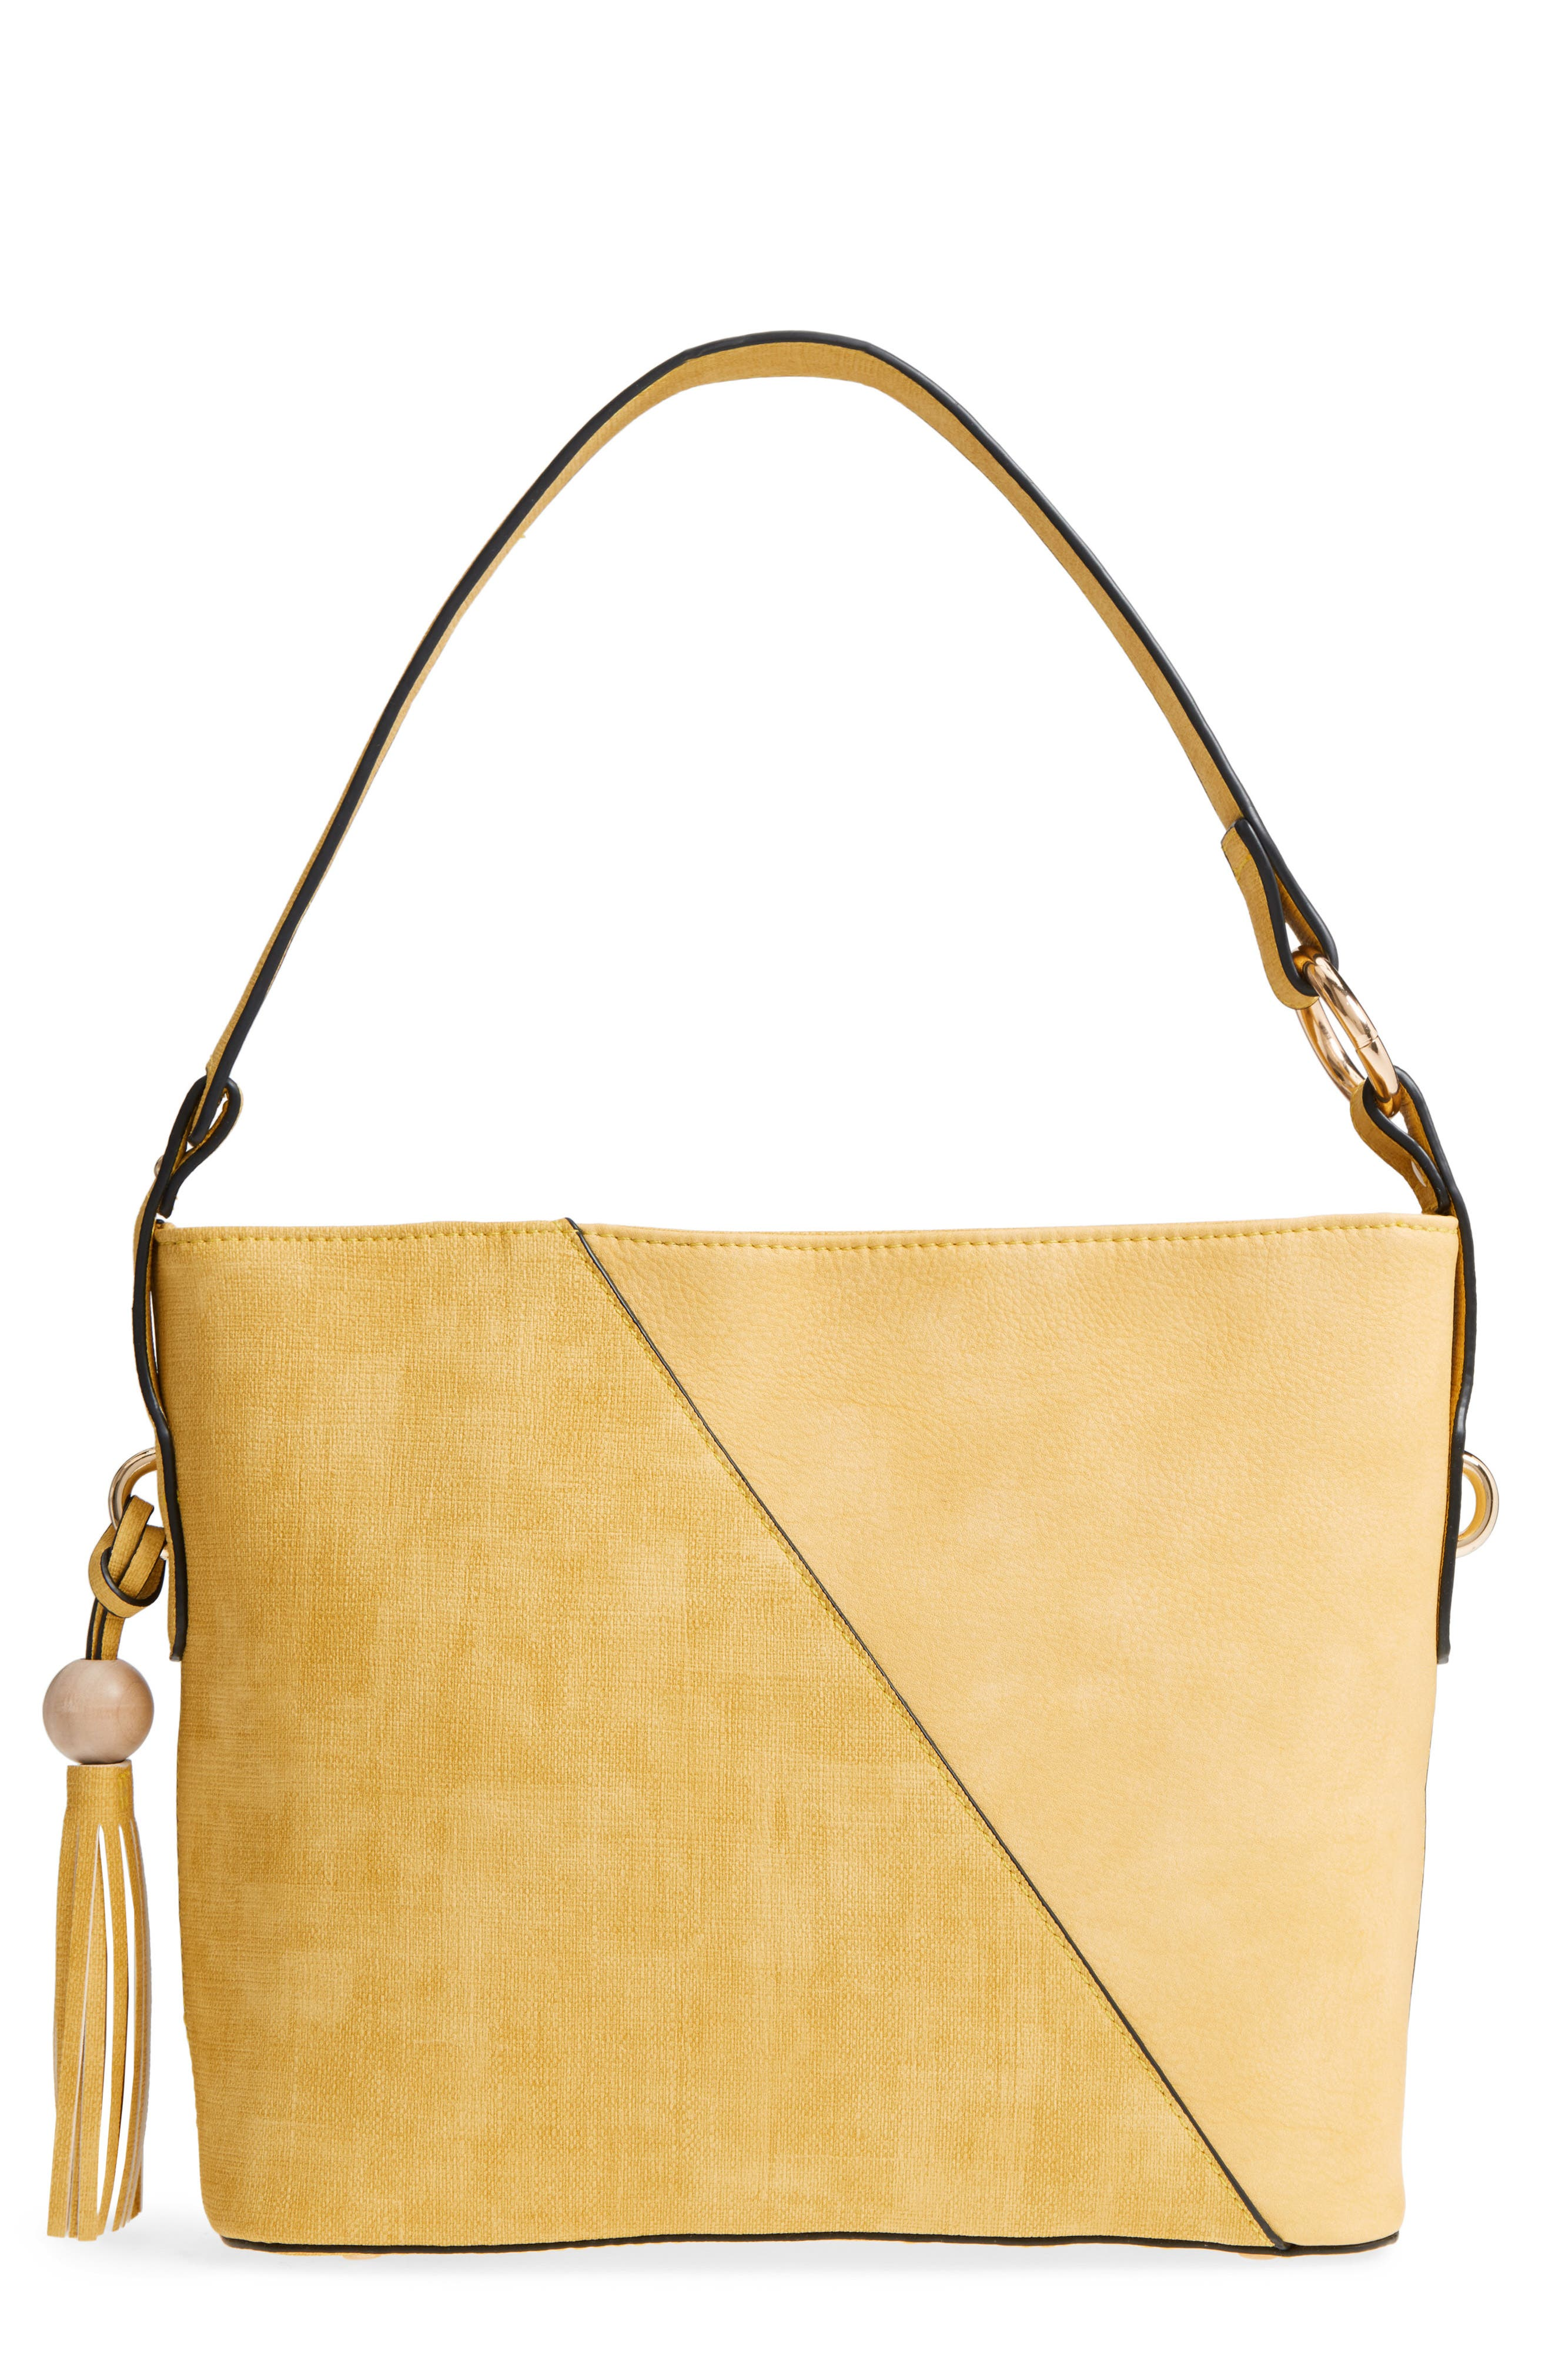 Sondra Roberts Faux Leather Tote